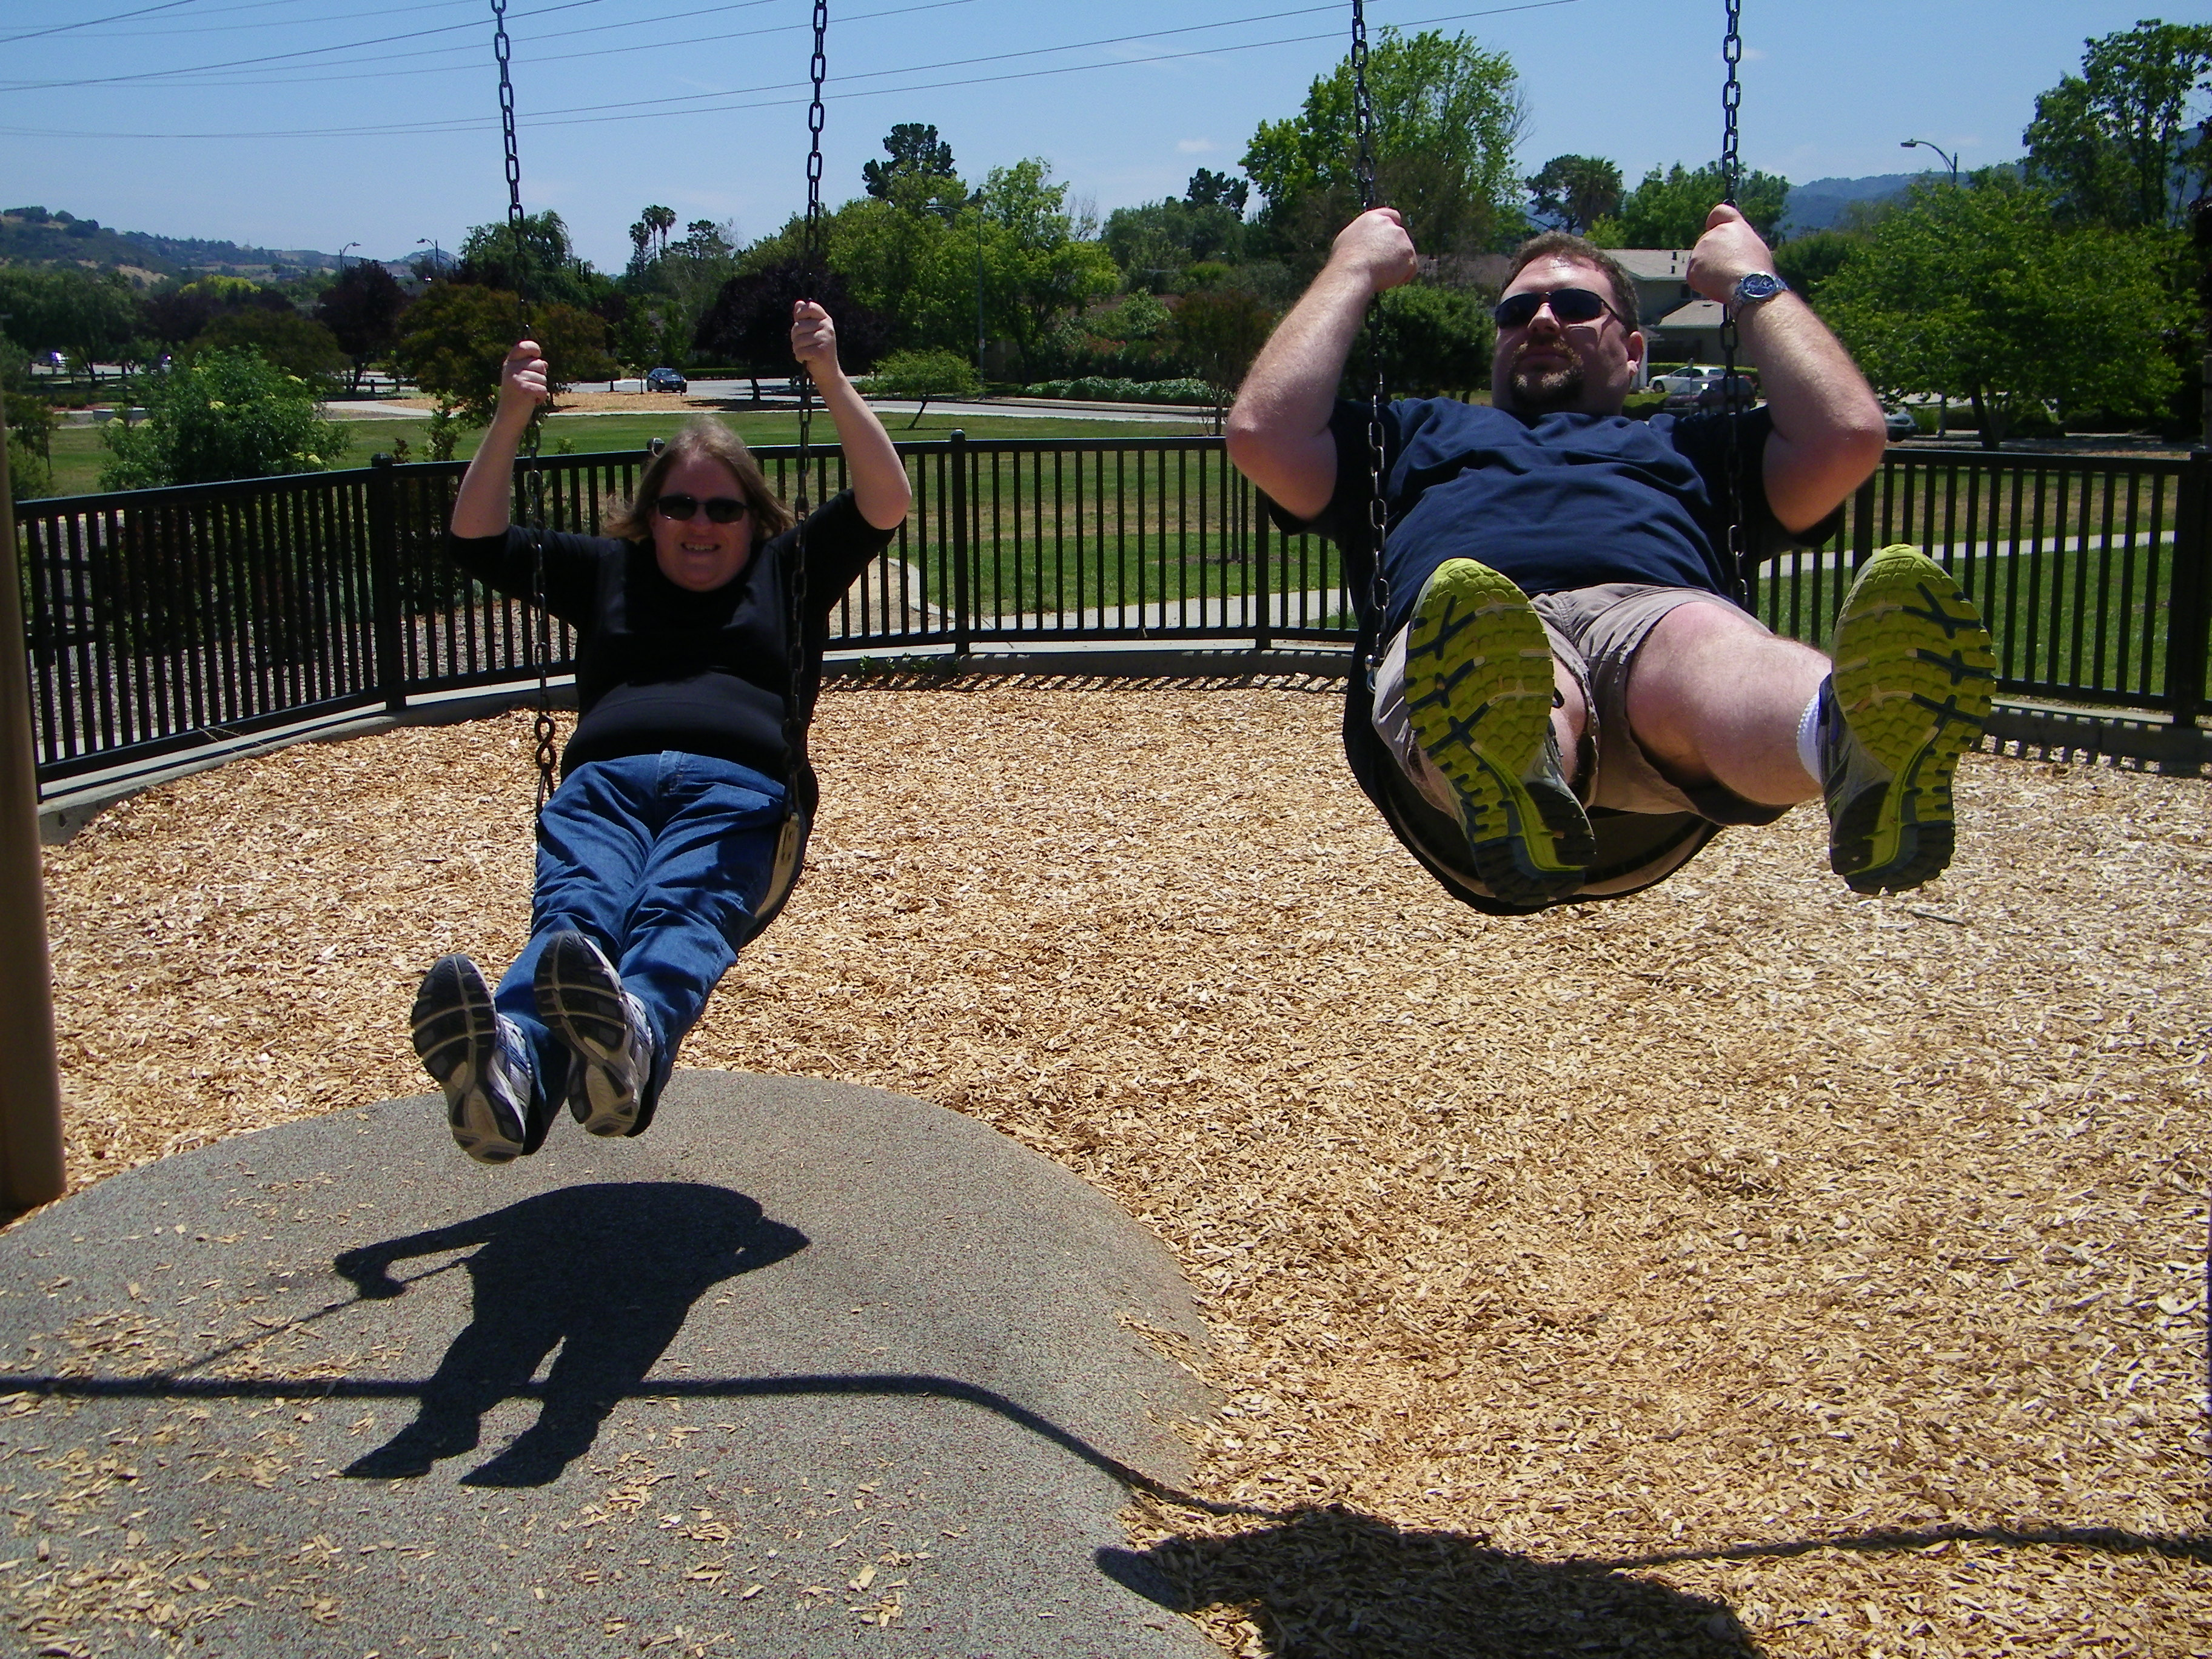 Sean and I on the swings.